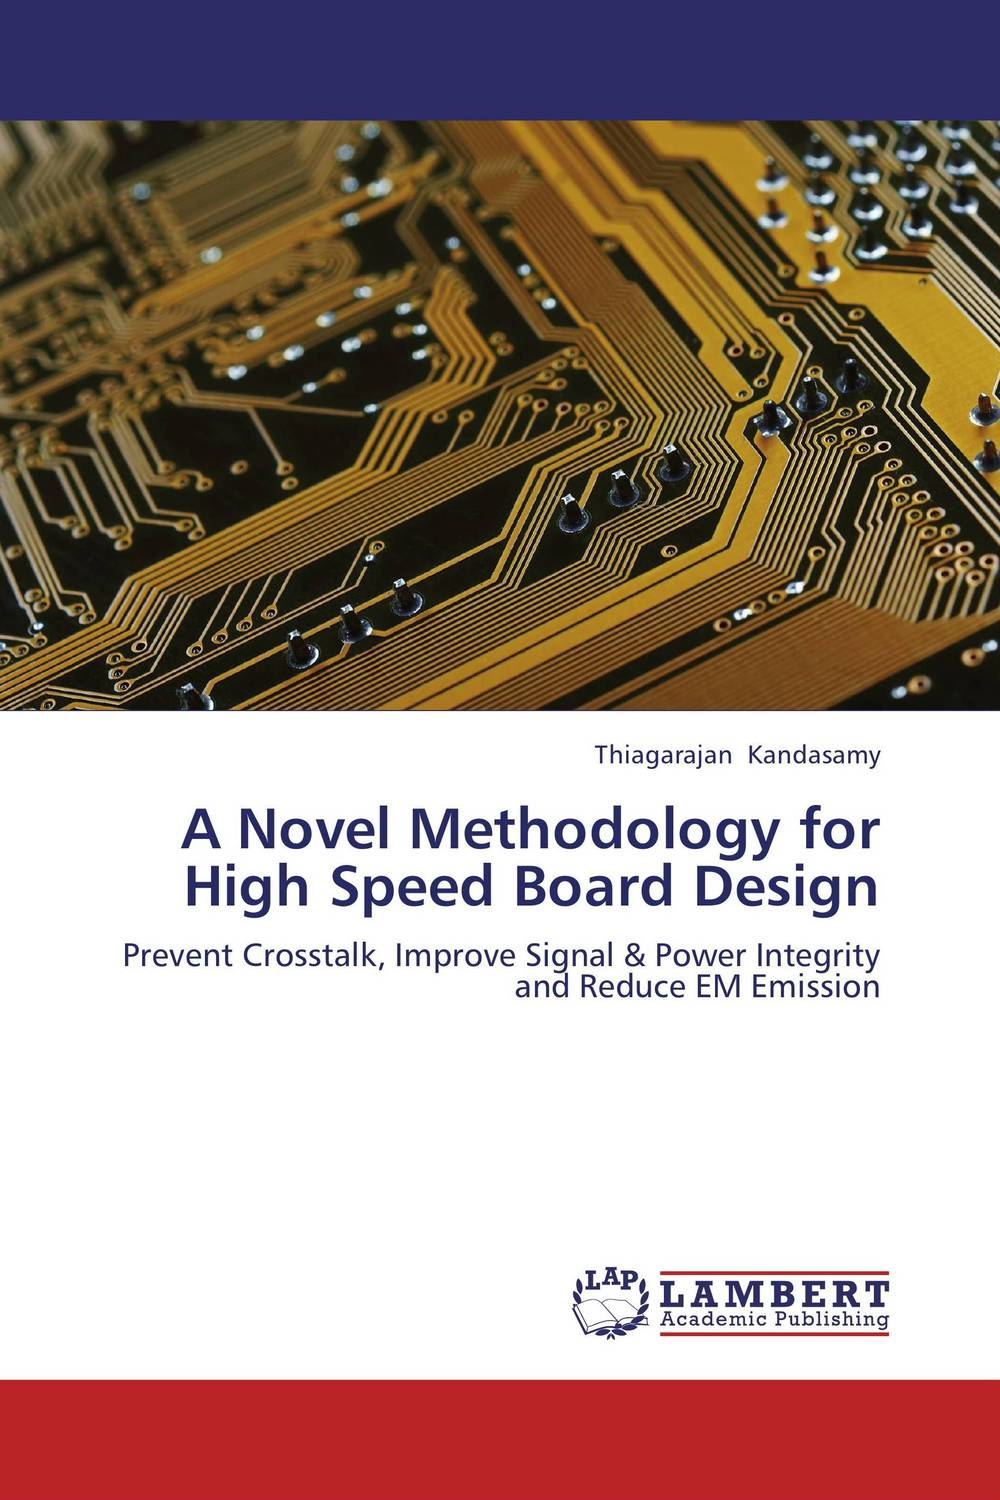 A Novel Methodology for High Speed Board Design